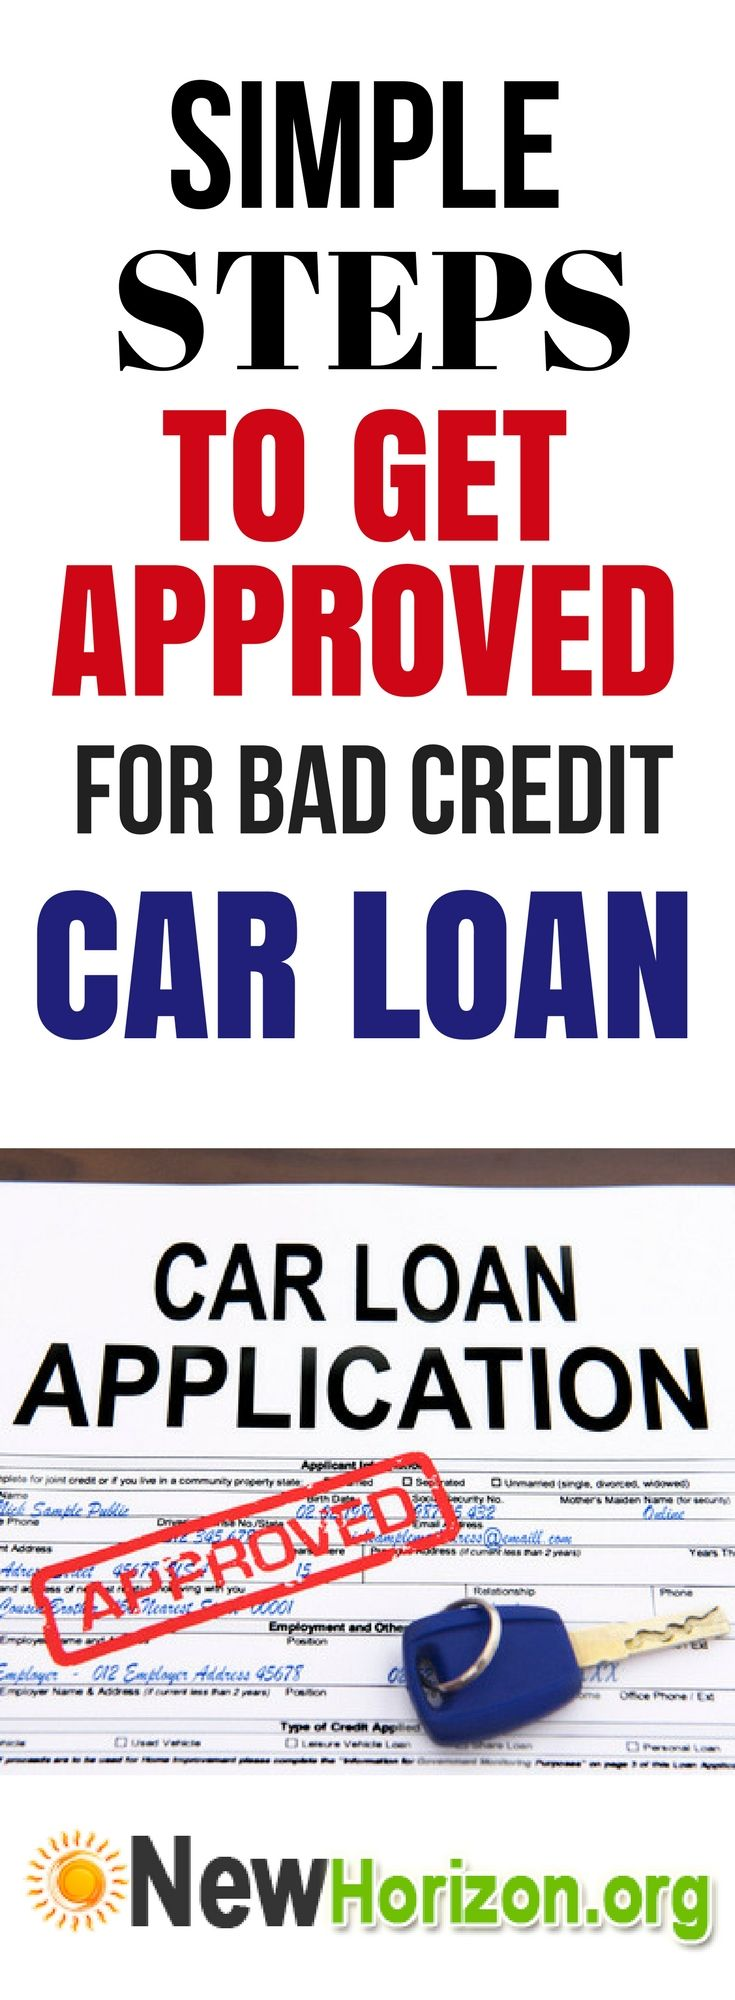 If you want to apply for a bad credit car loan, taking advanced preparations is important to ensure your approval. What can you do to avoid getting rejected on your car loan? Below are practical steps that should not be overlooked.